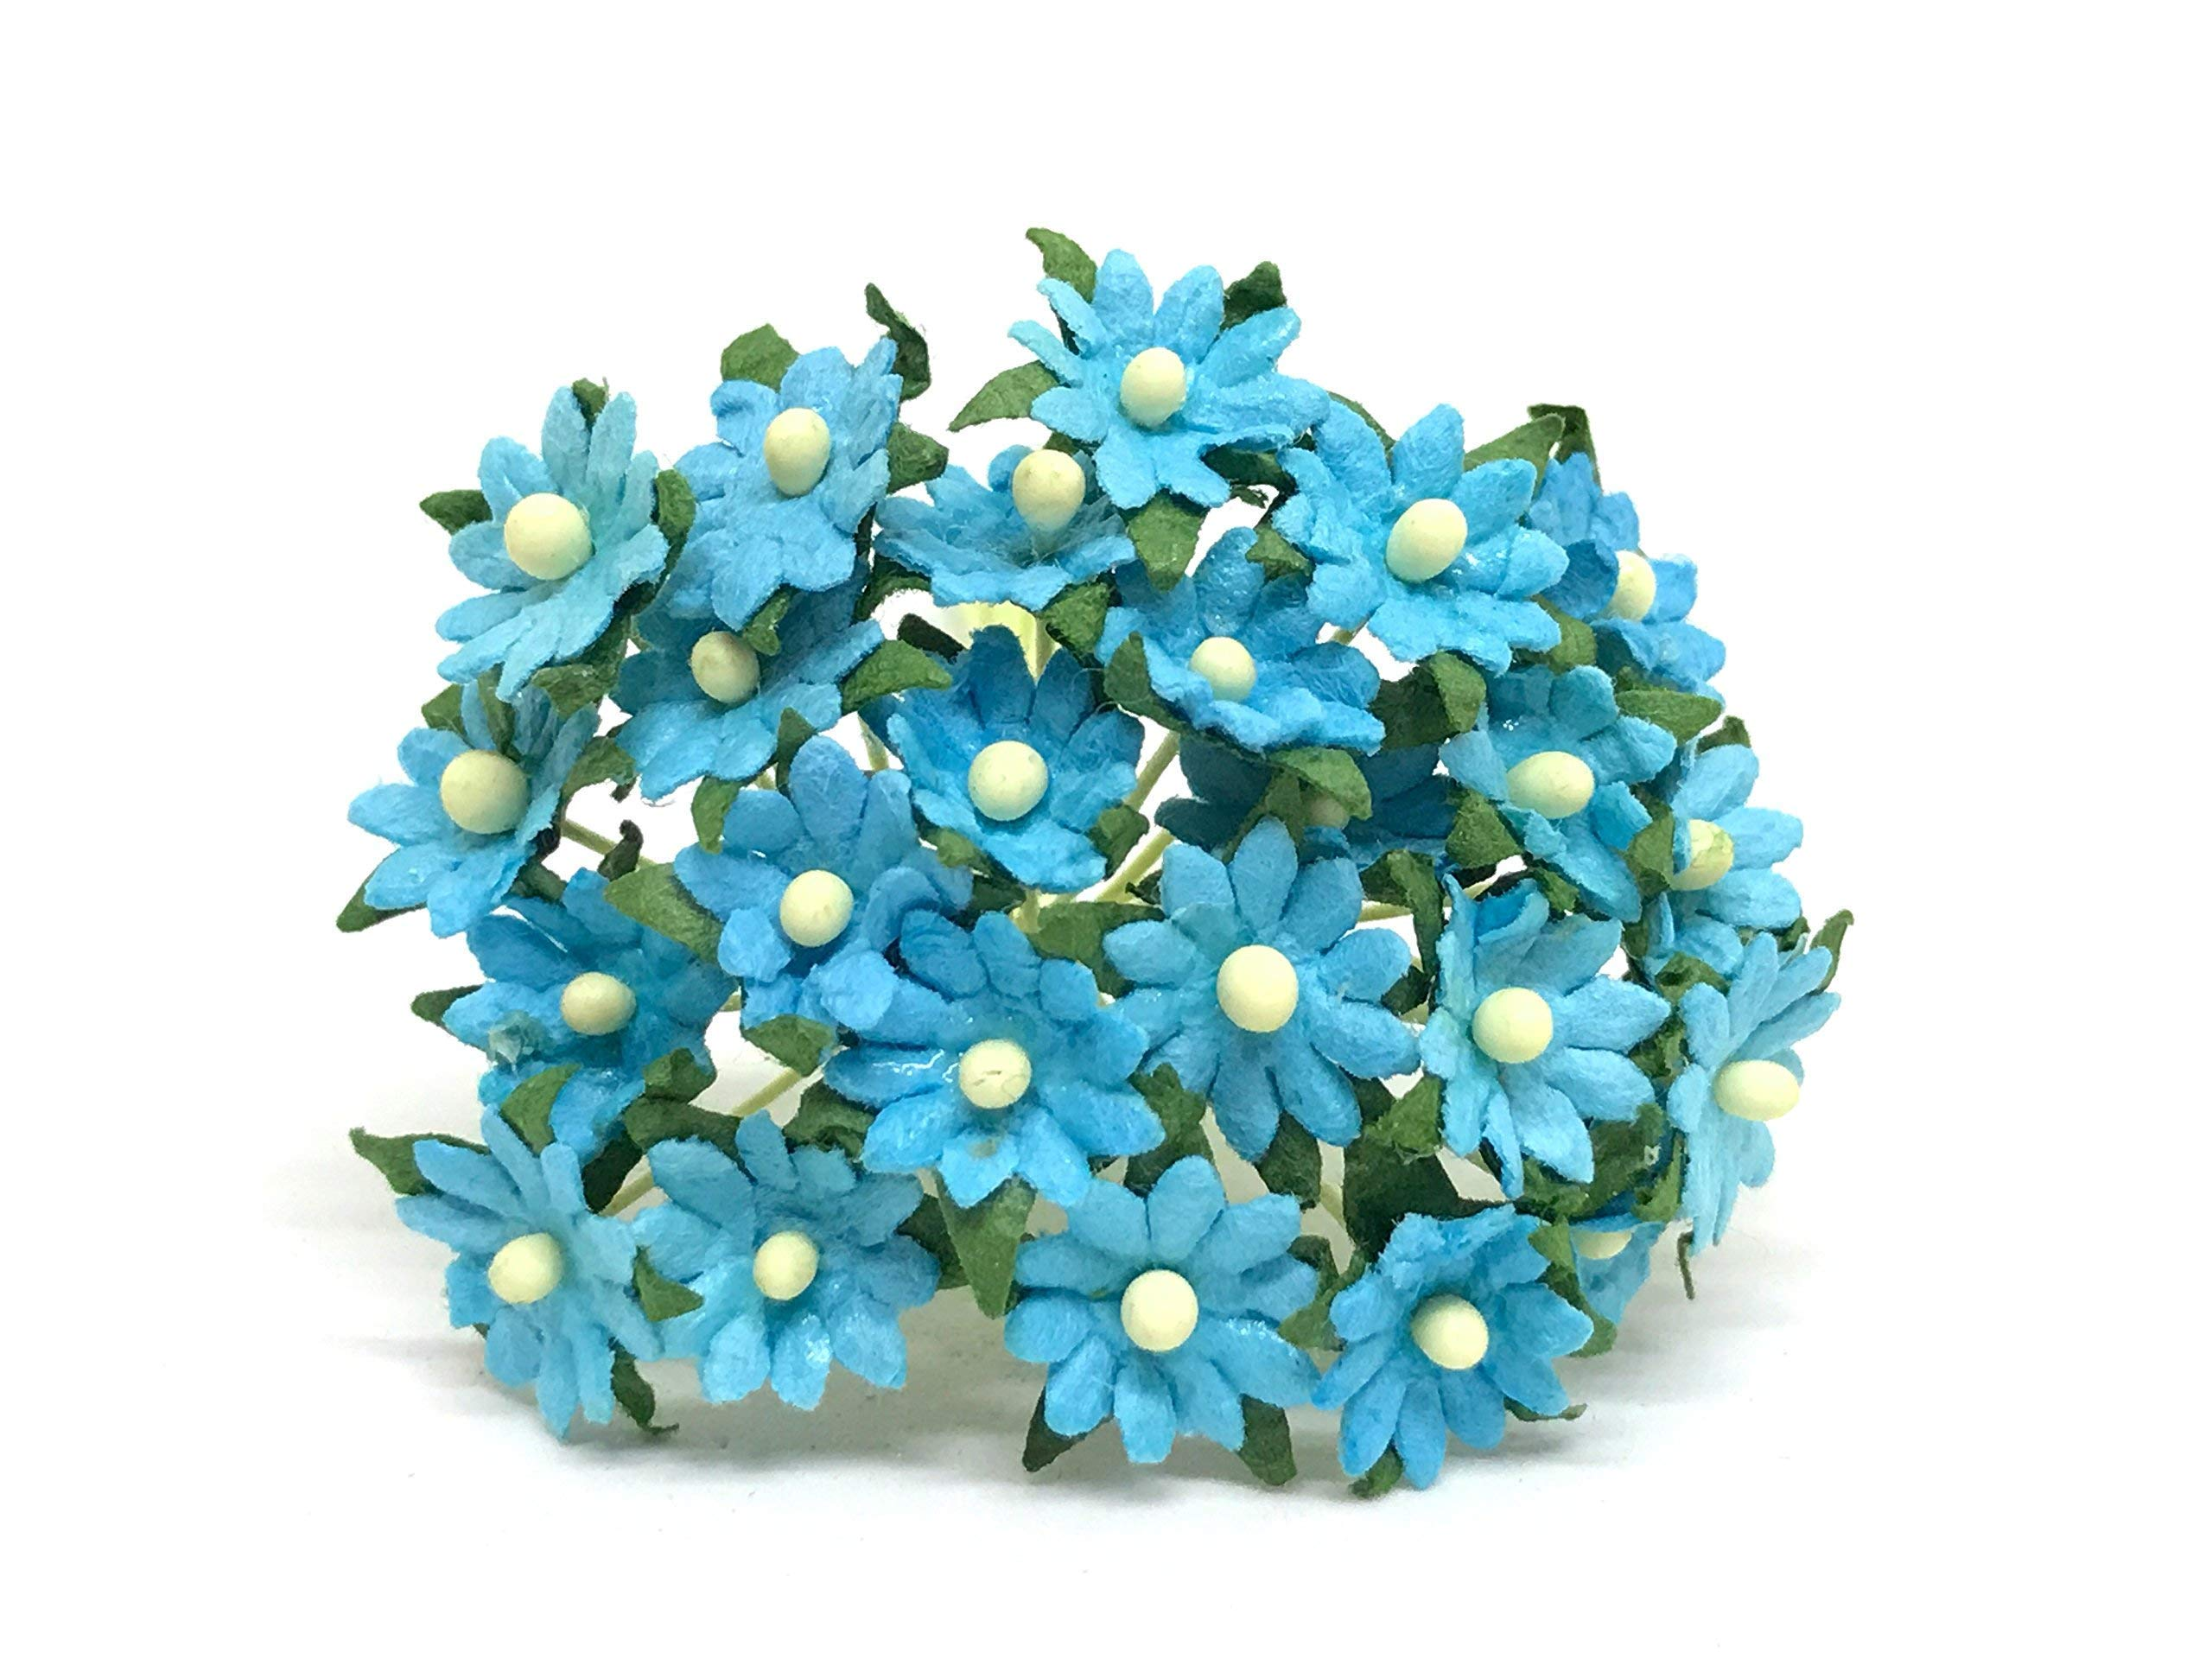 1cm-Turquoise-Paper-Daisies-Mulberry-Paper-Flowers-Miniature-Flowers-For-Crafts-Mulberry-Paper-Daisy-Paper-Flower-Artificial-Flowers-50-Pieces